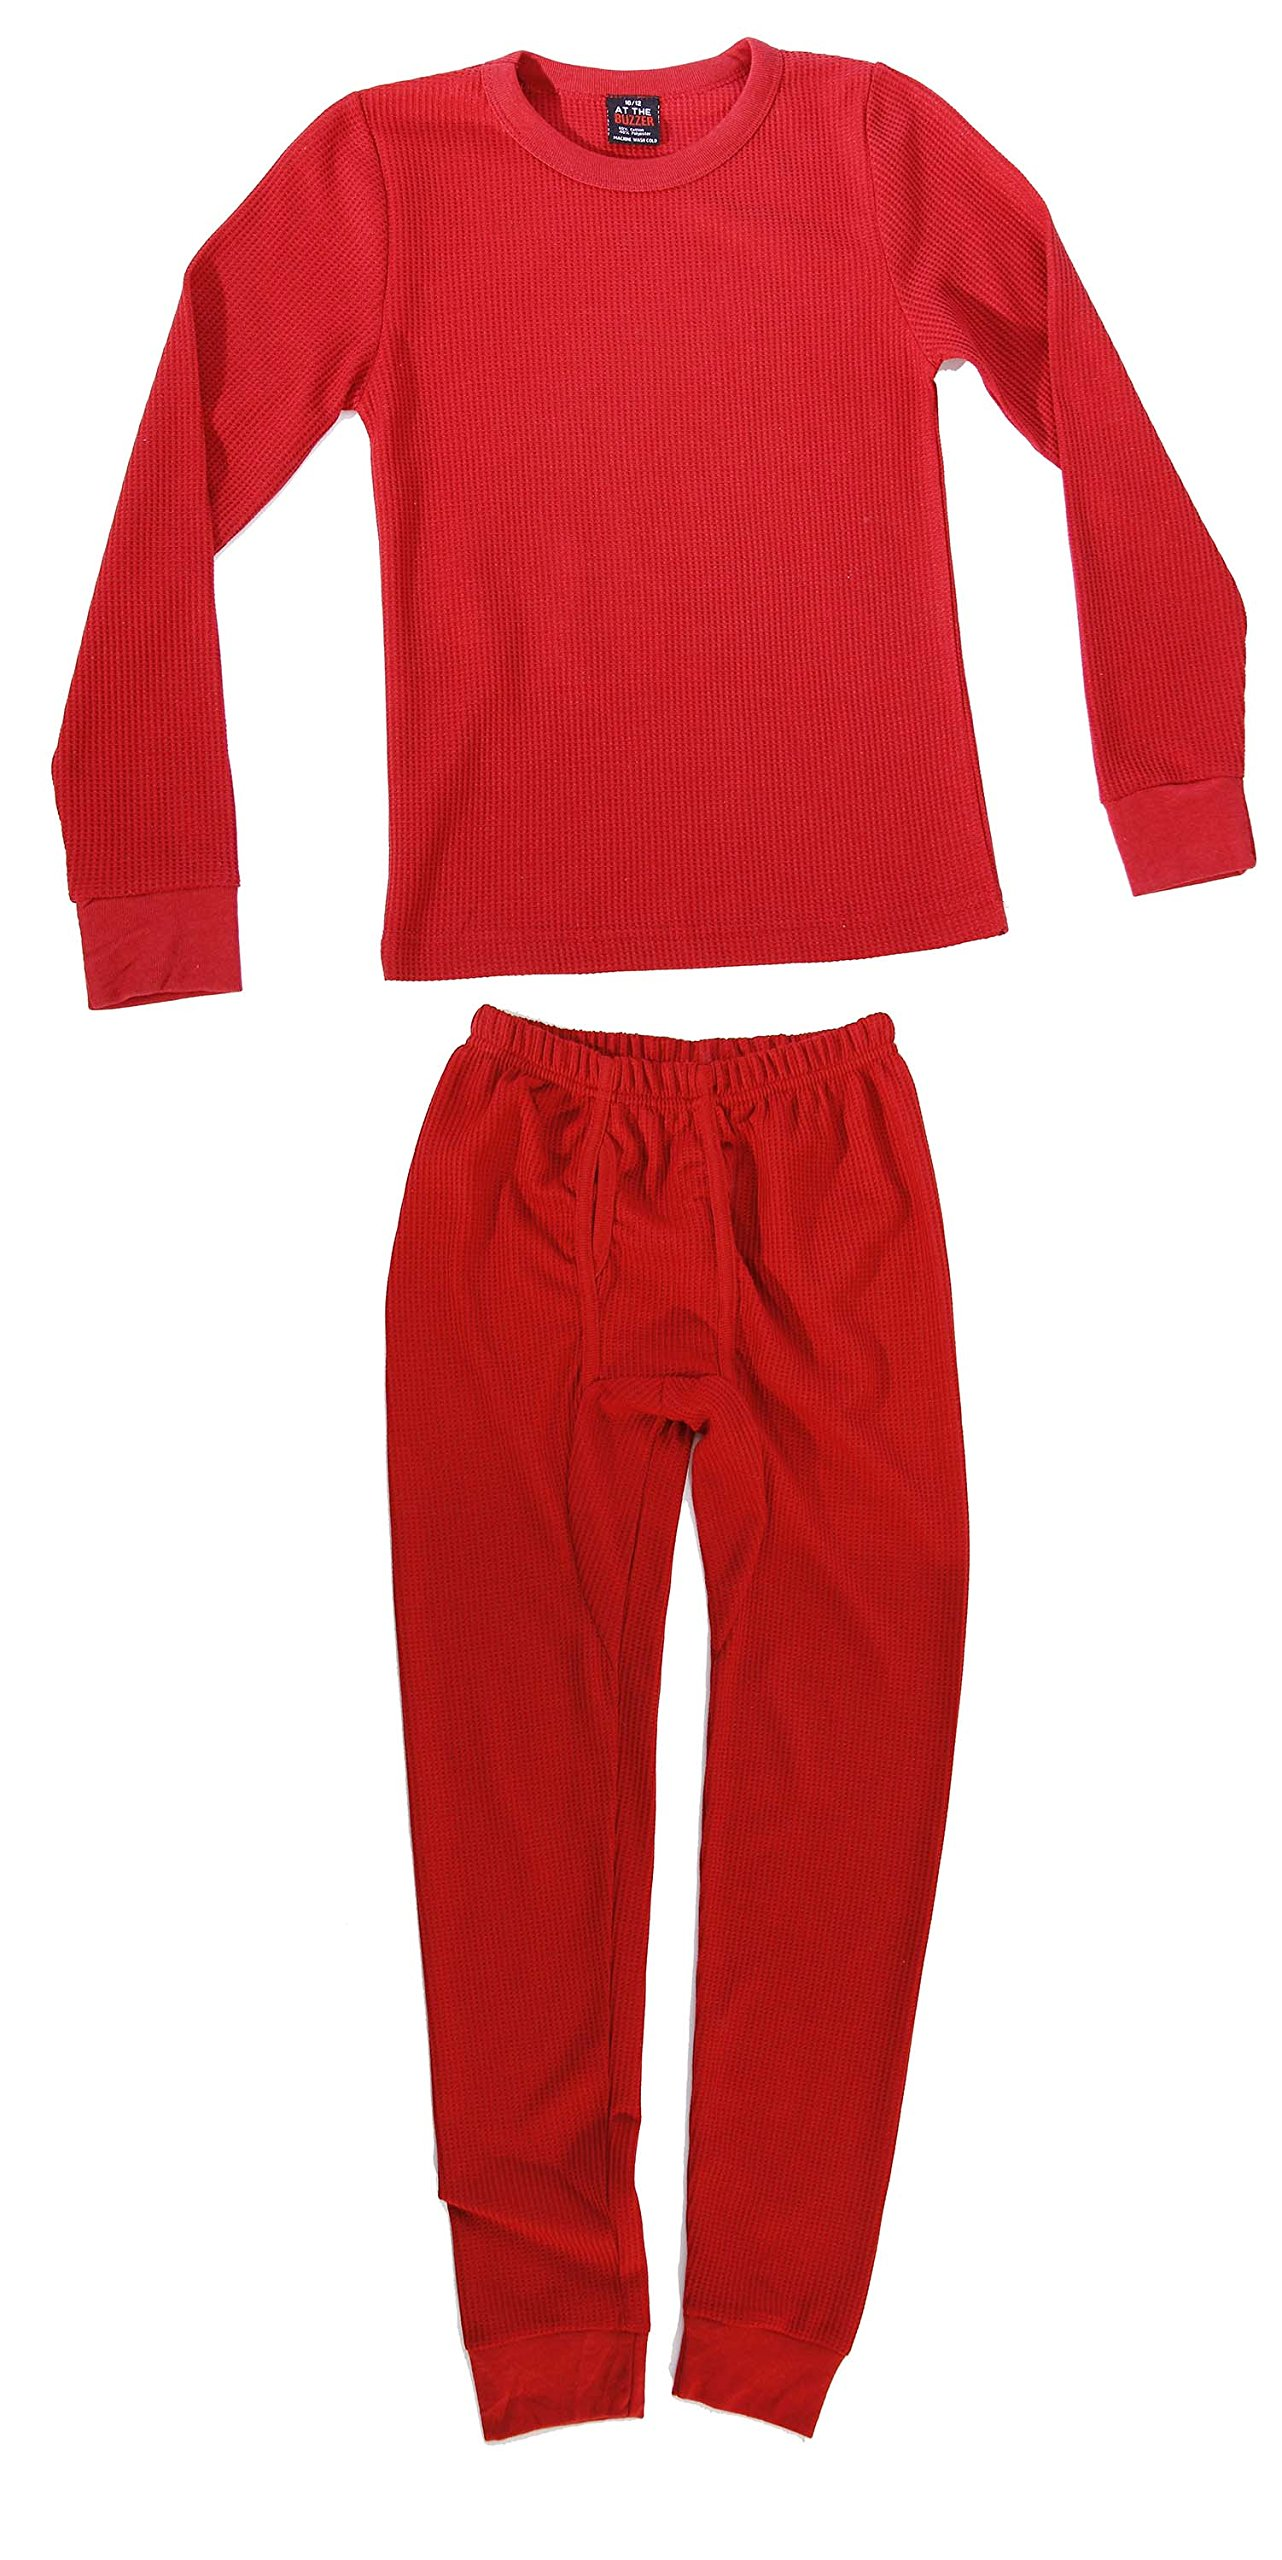 At The Buzzer Thermal Underwear Set for Boys 95362-Red-10/12 by At The Buzzer